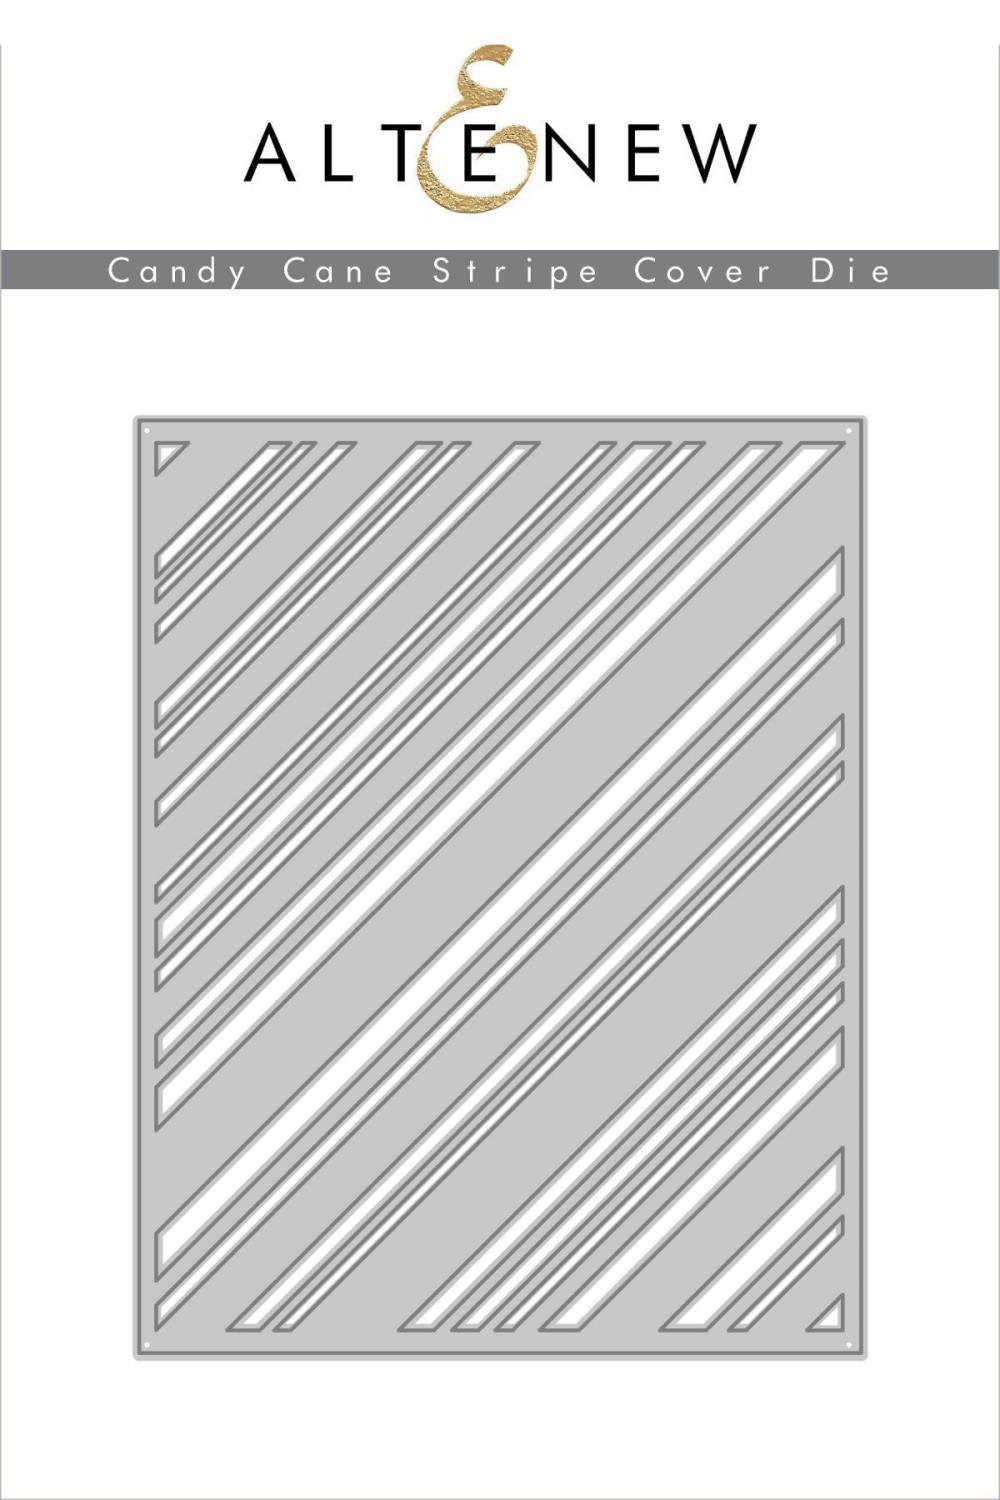 Altenew - Candy Cane Stripe Cover Die